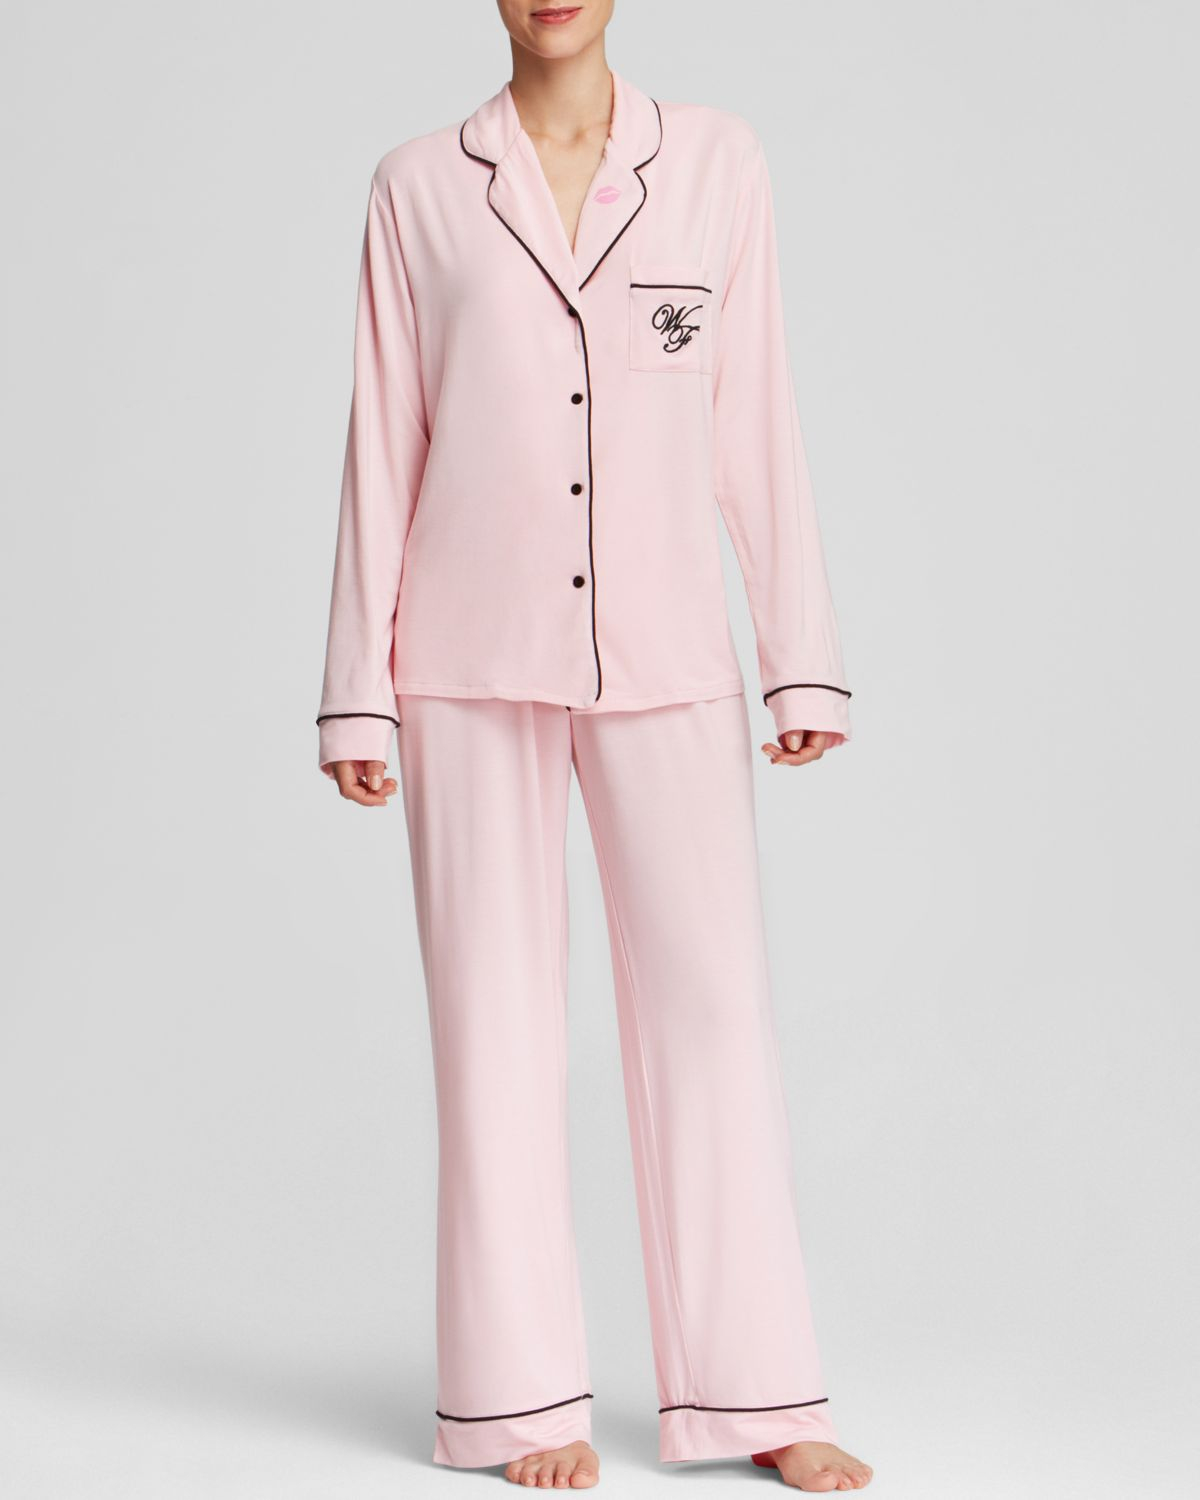 Lyst - Wildfox Love Is Everything Classic Pajama Set in Pink 5819ebf82